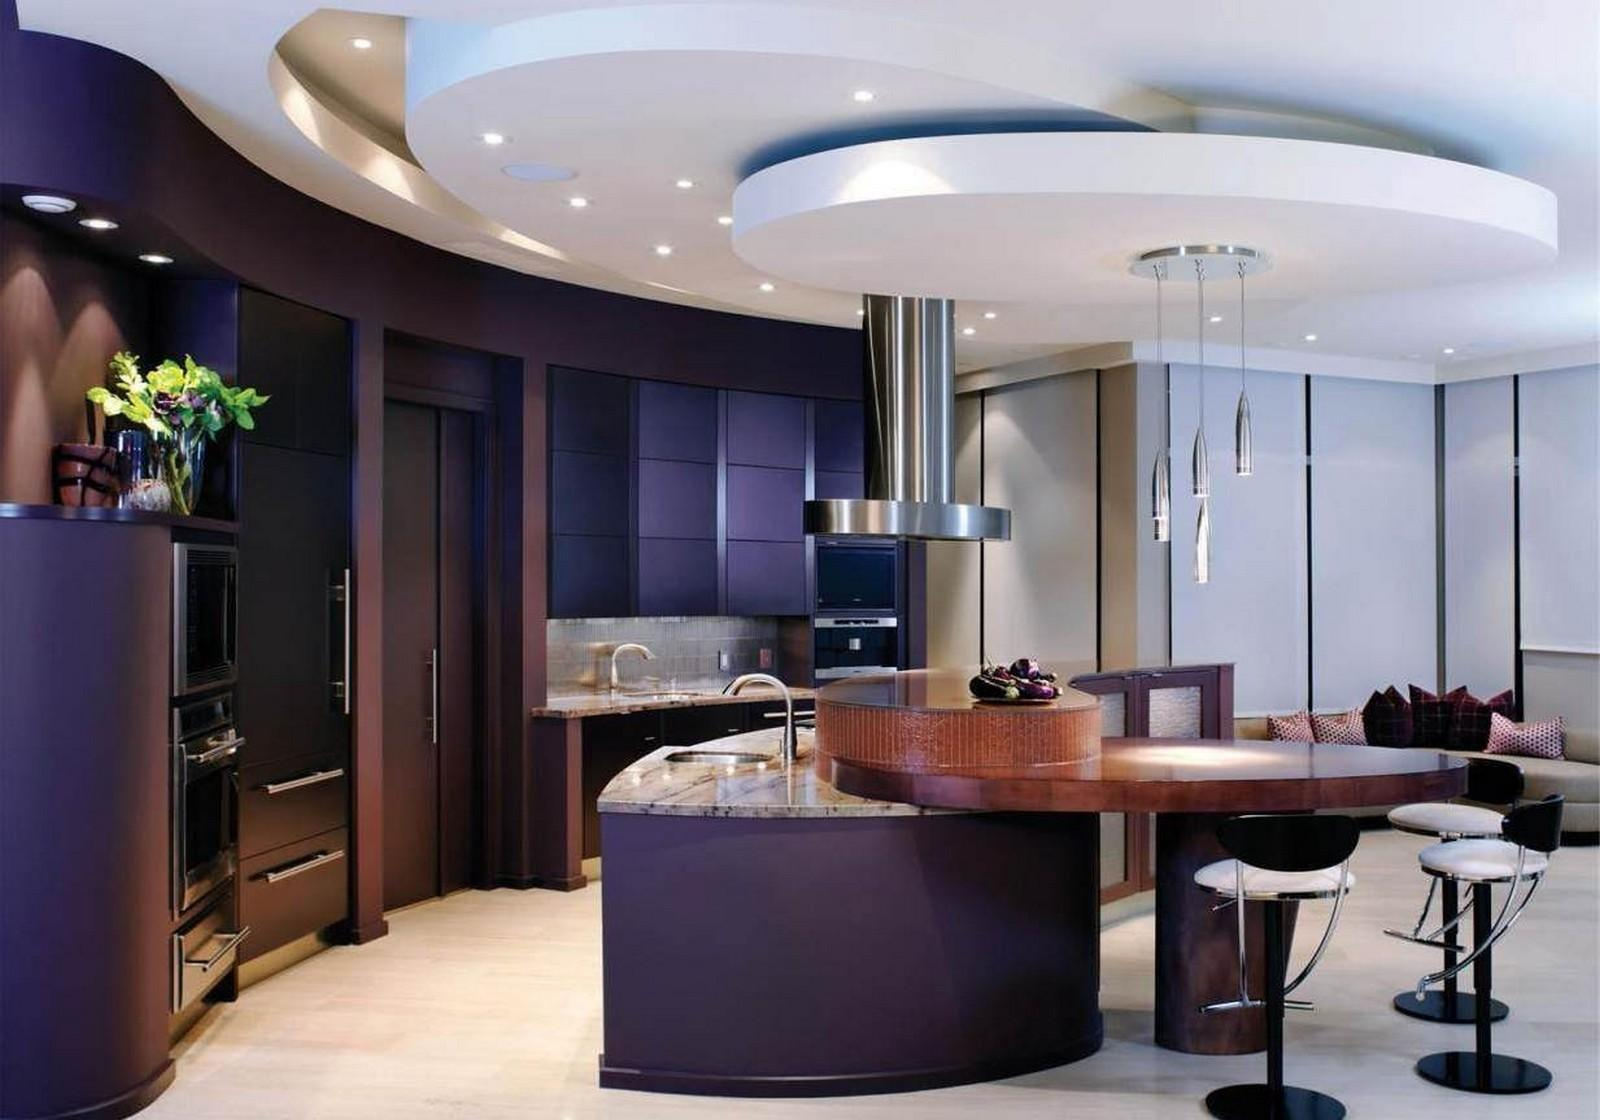 Modern Recessed Lighting Kitchen Ceiling Luxury